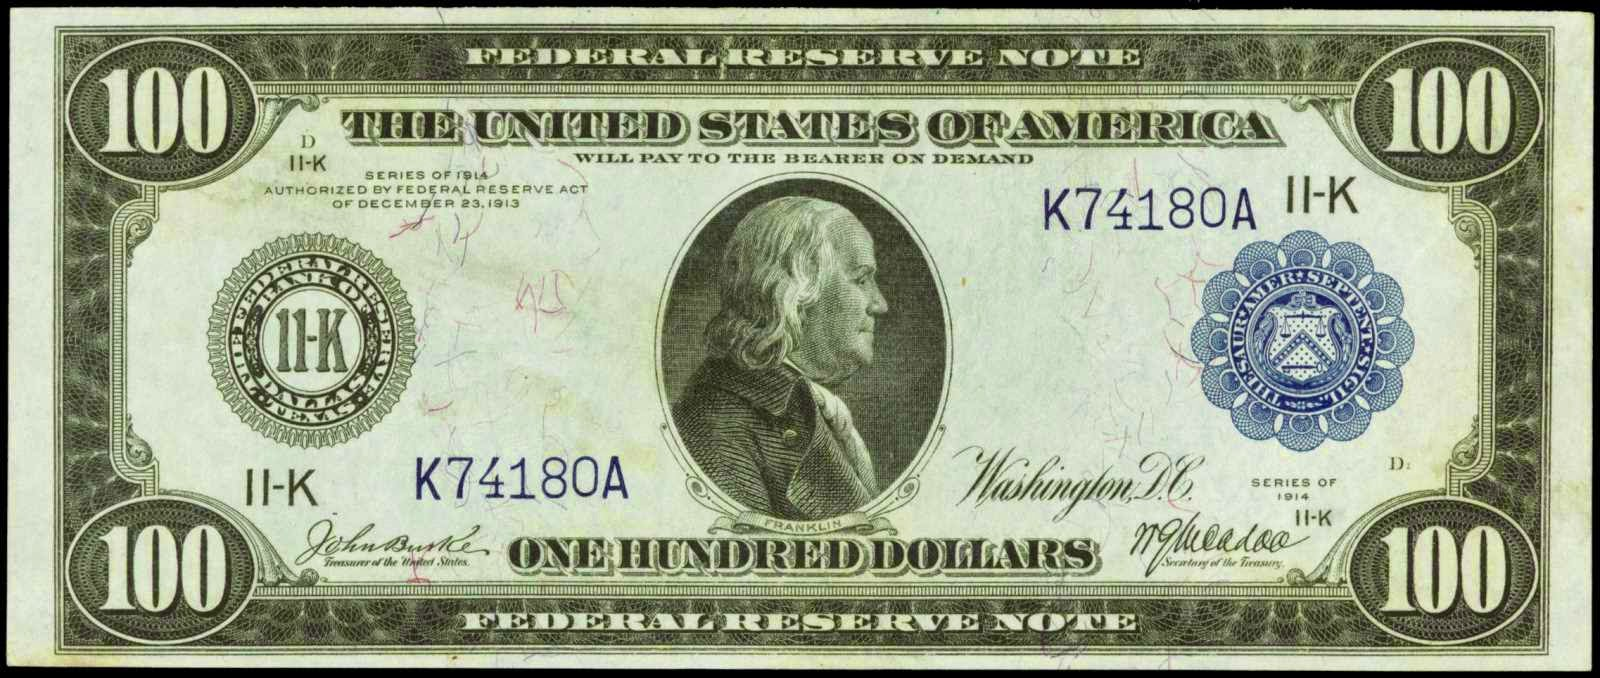 Large Size US Paper Money 1914 One Hundred Dollar Federal Reserve Note